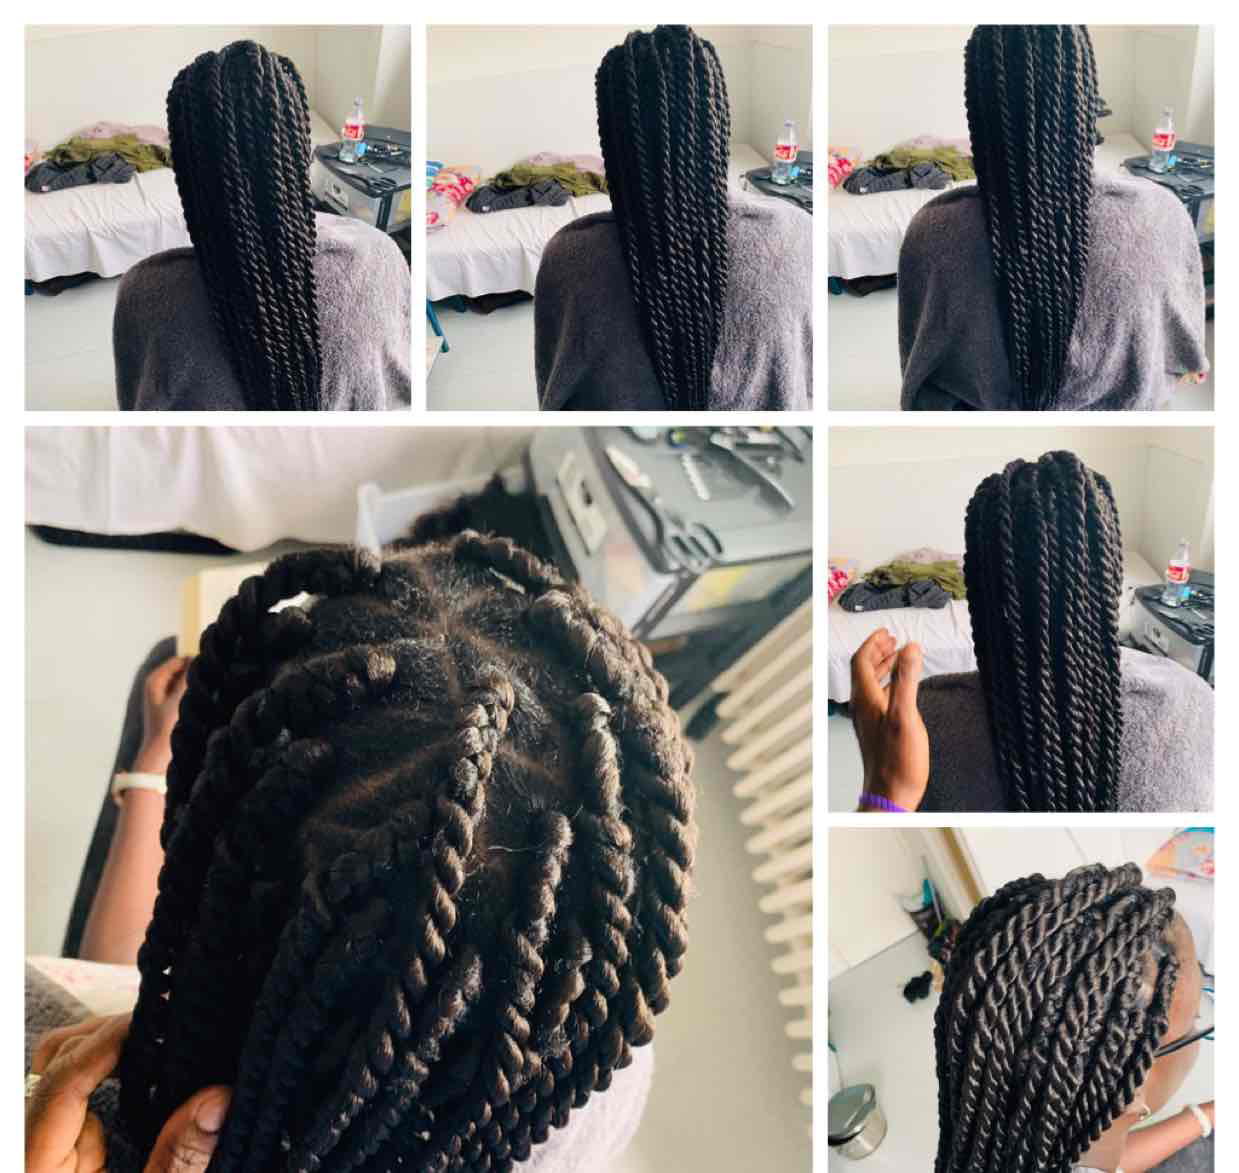 salon de coiffure afro tresse tresses box braids crochet braids vanilles tissages paris 75 77 78 91 92 93 94 95 YEQGXYAH